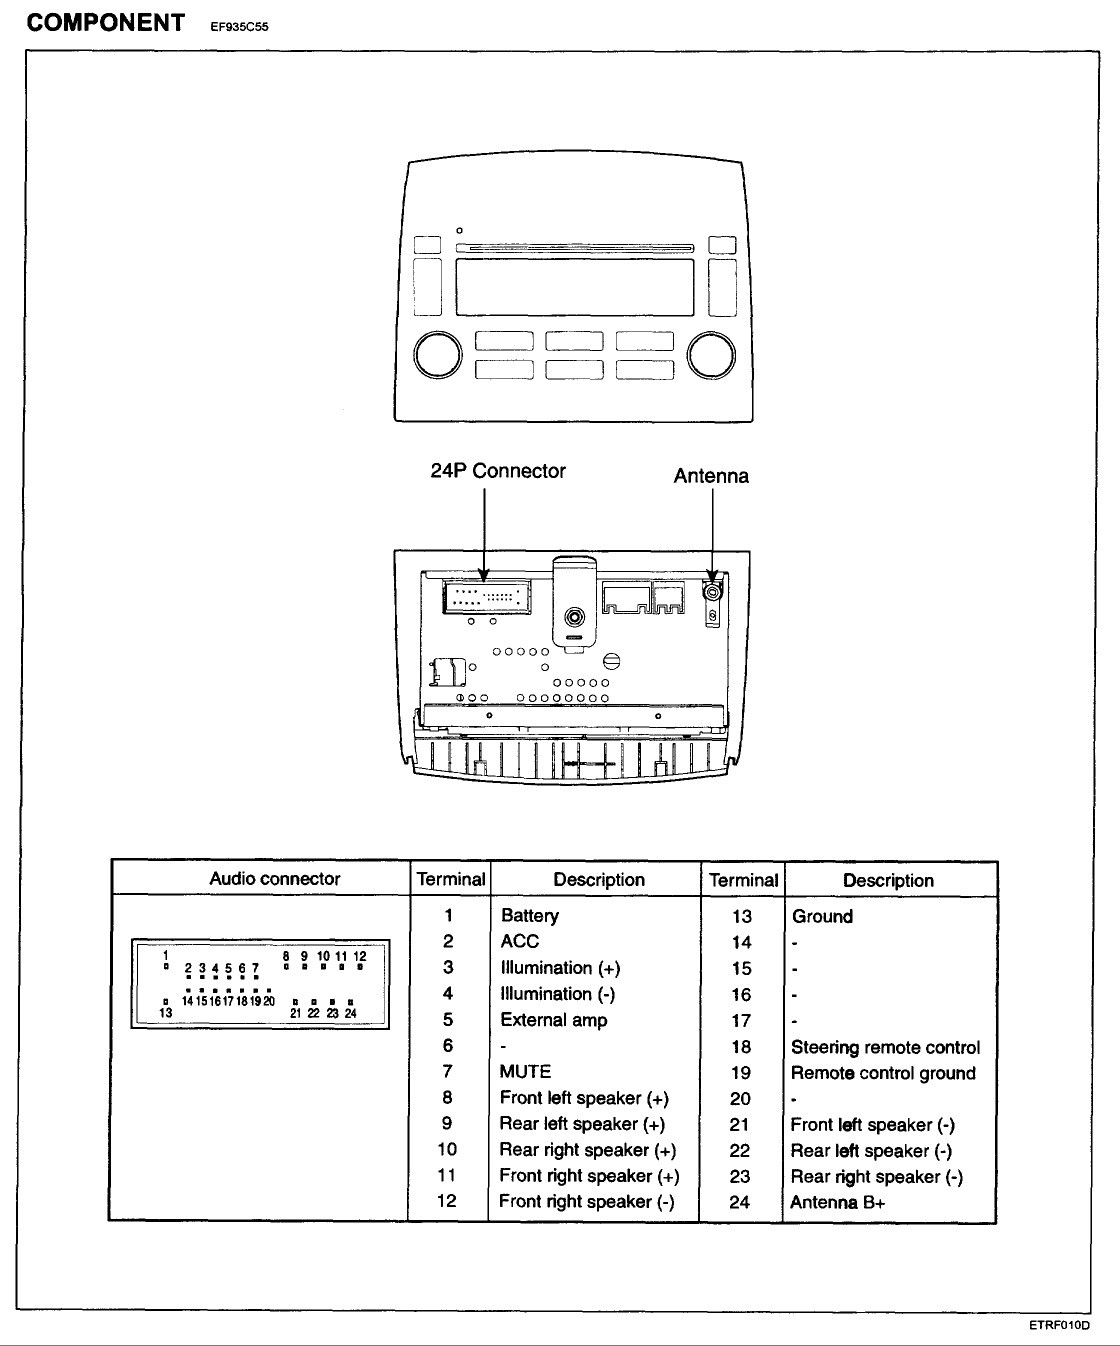 hyundai wiring diagrams electrical diagrams forum u2022 rh woollenkiwi co uk hyundai i10 wiring diagram pdf hyundai grand i10 wiring diagram